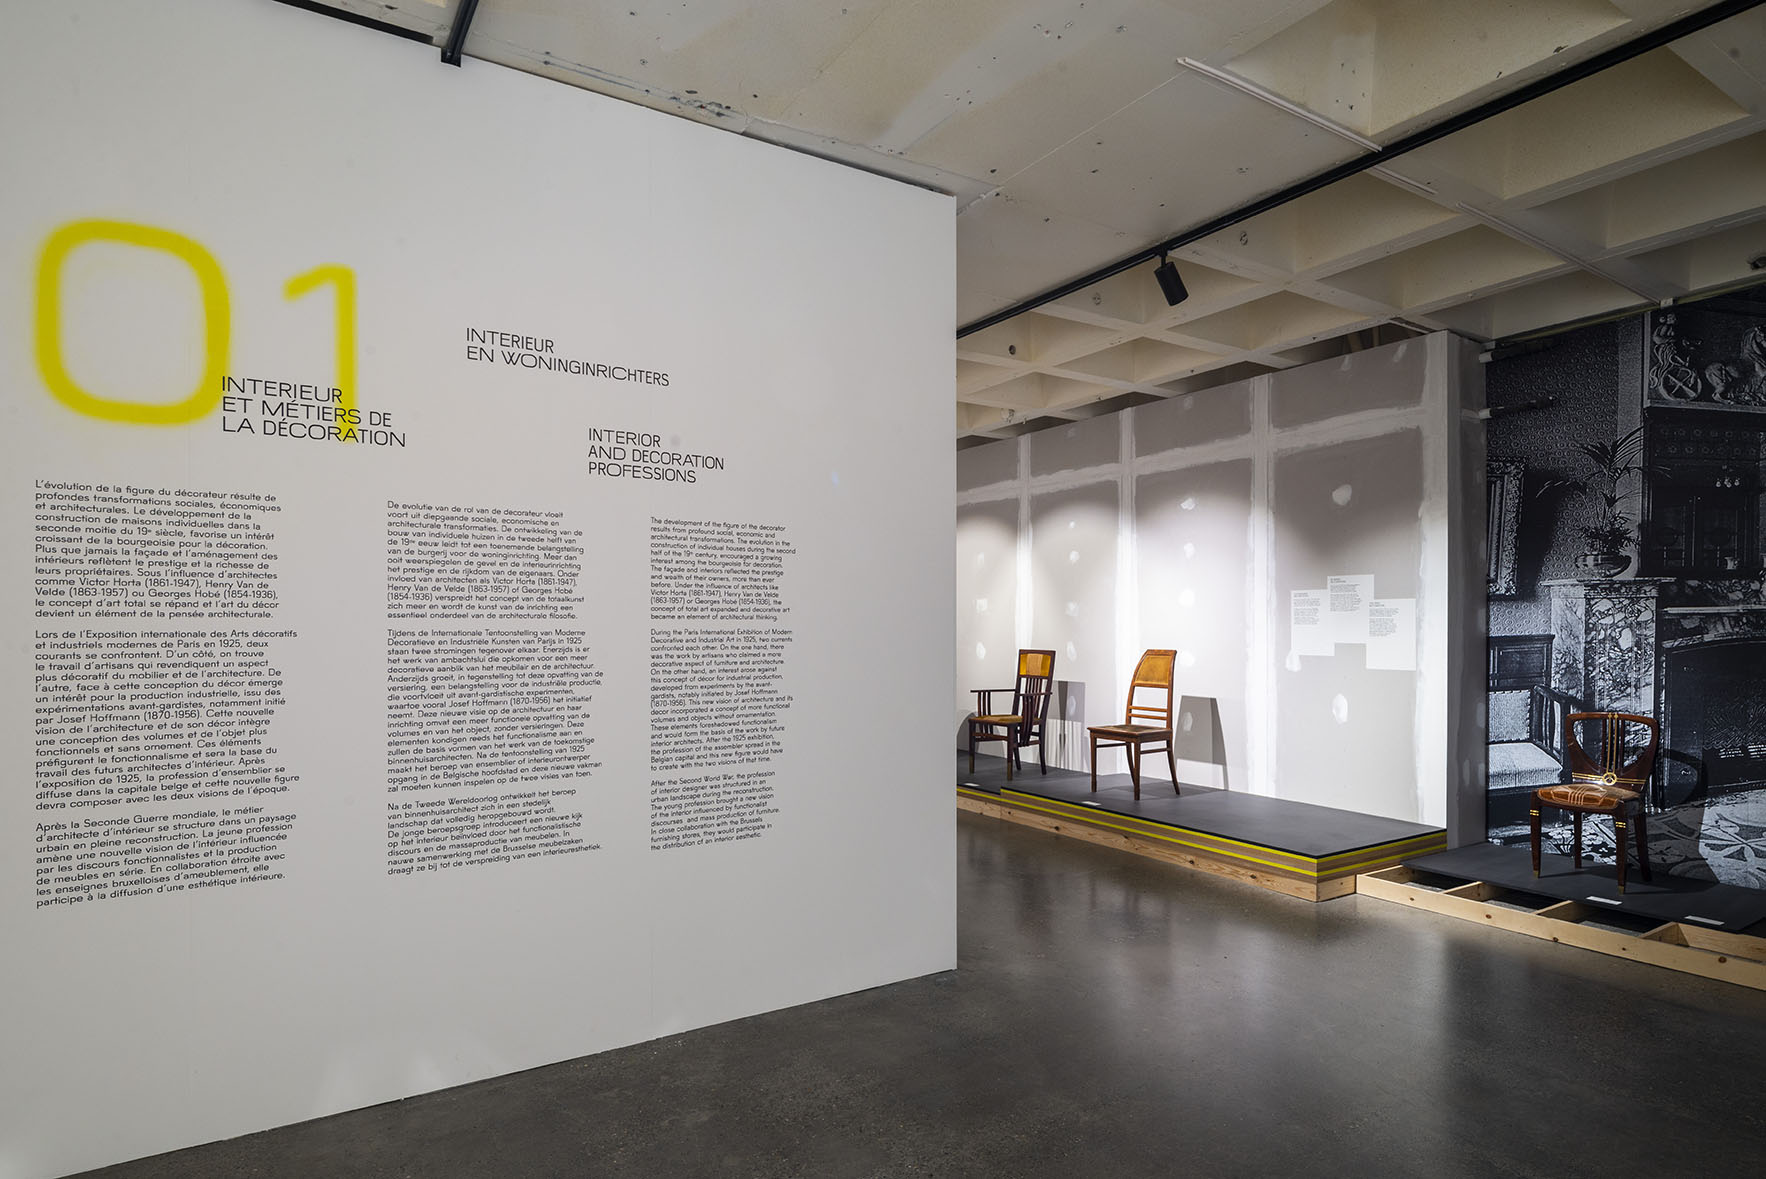 Scenography by stoz.design. SPACES Interior design evolution, Adam Brussels Design Museum